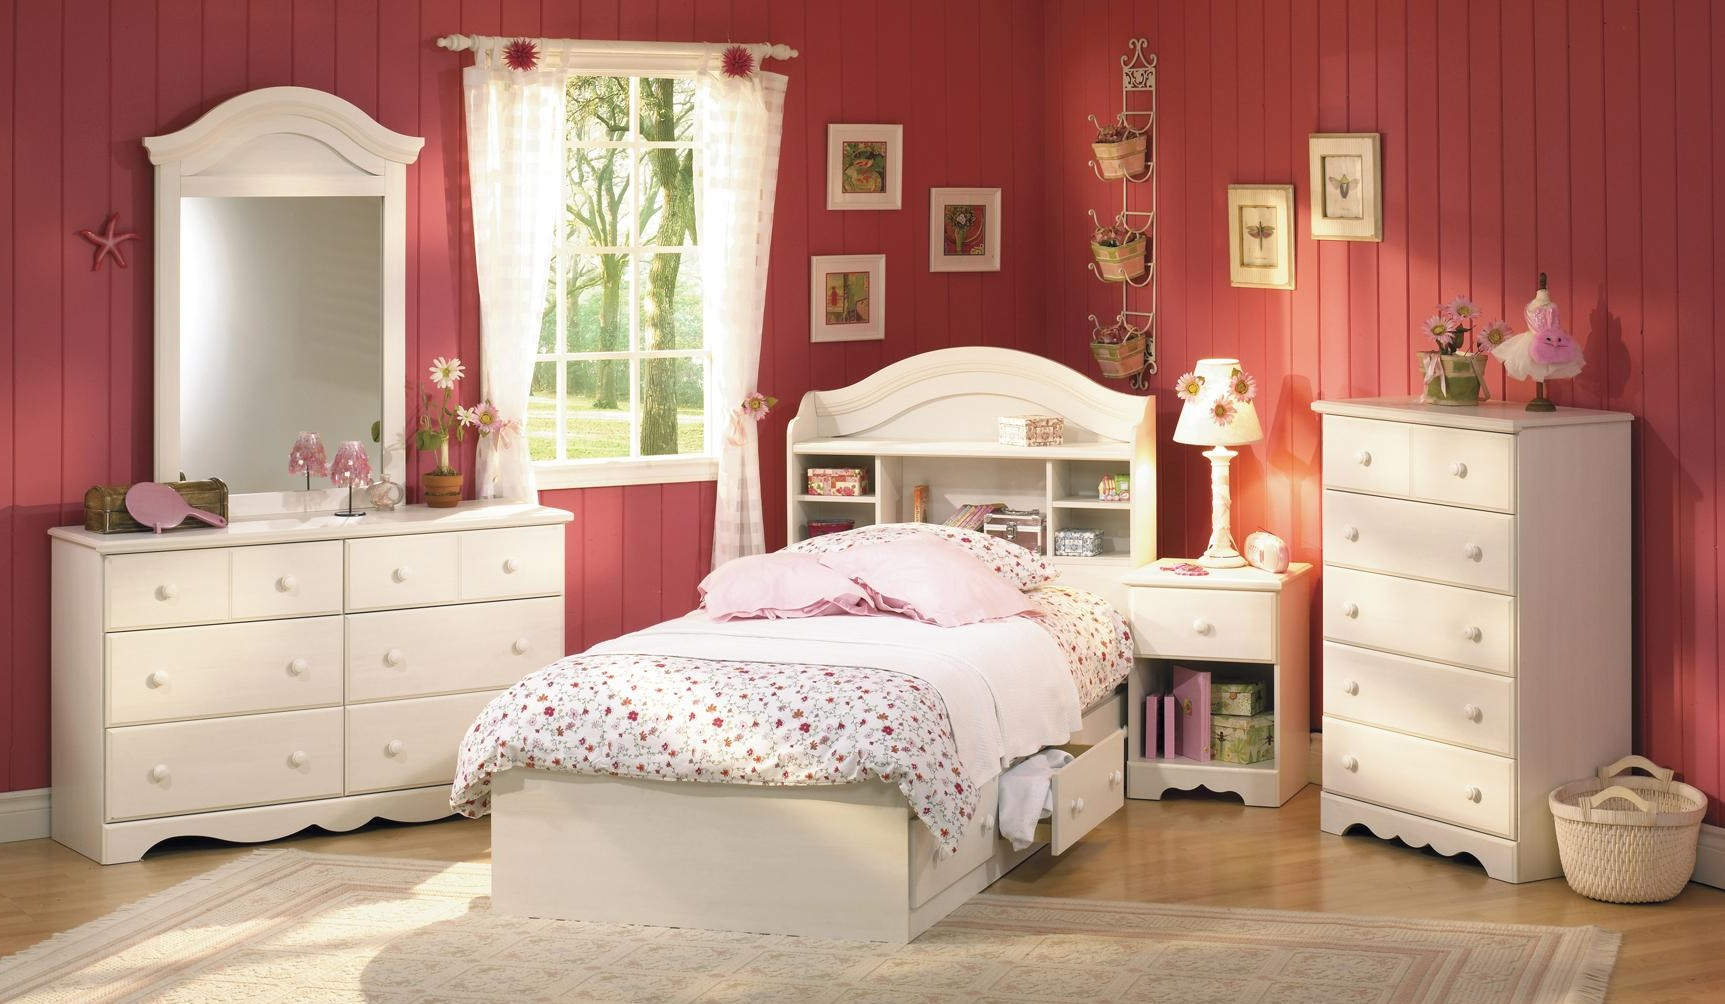 Best Curtains For Girls Bedroom With Pictures  October